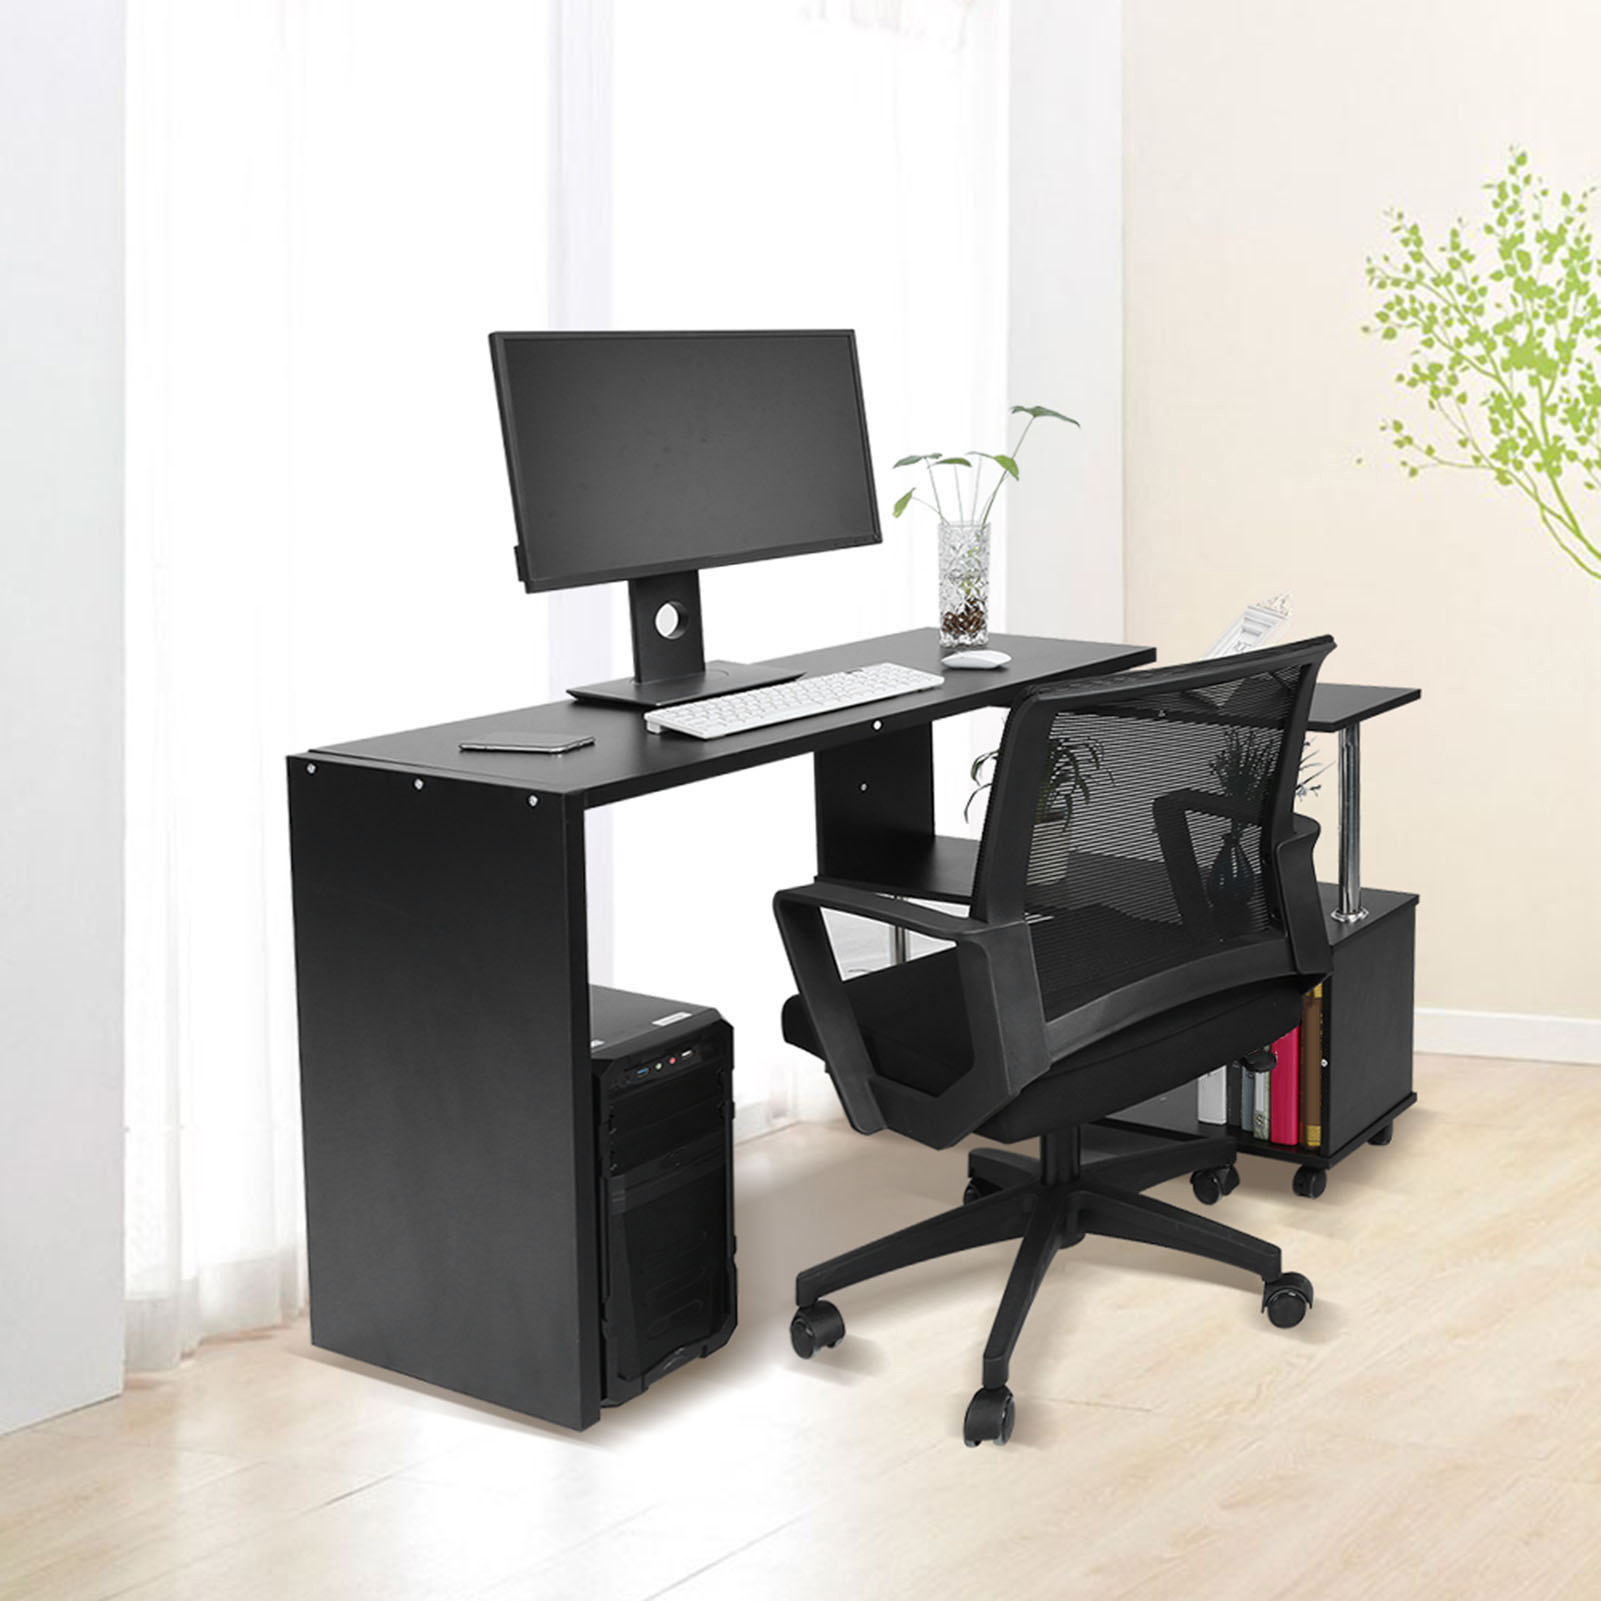 New Office Computer Desk Corner Table W Bookshelf Study Student Rotary White AU